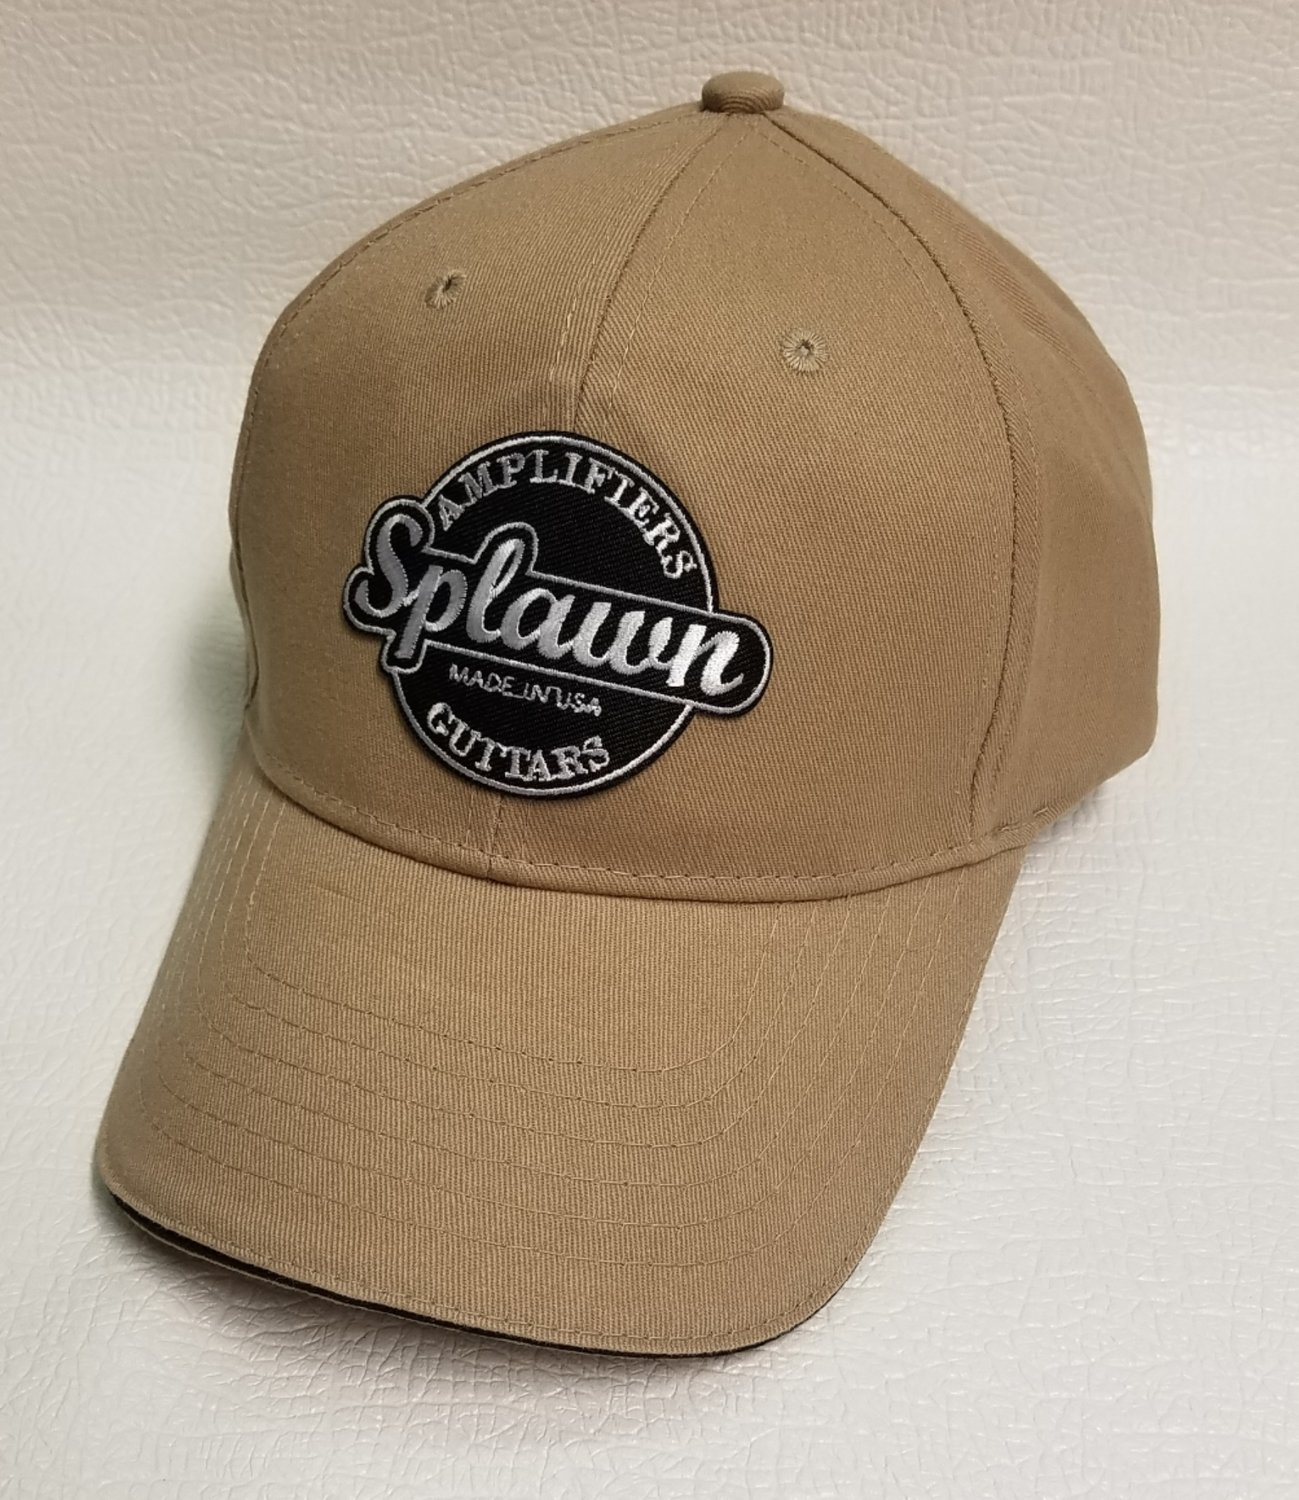 Big Accessories BX004 6-Panel Twill Sandwich Baseball Cap with Splawn logo